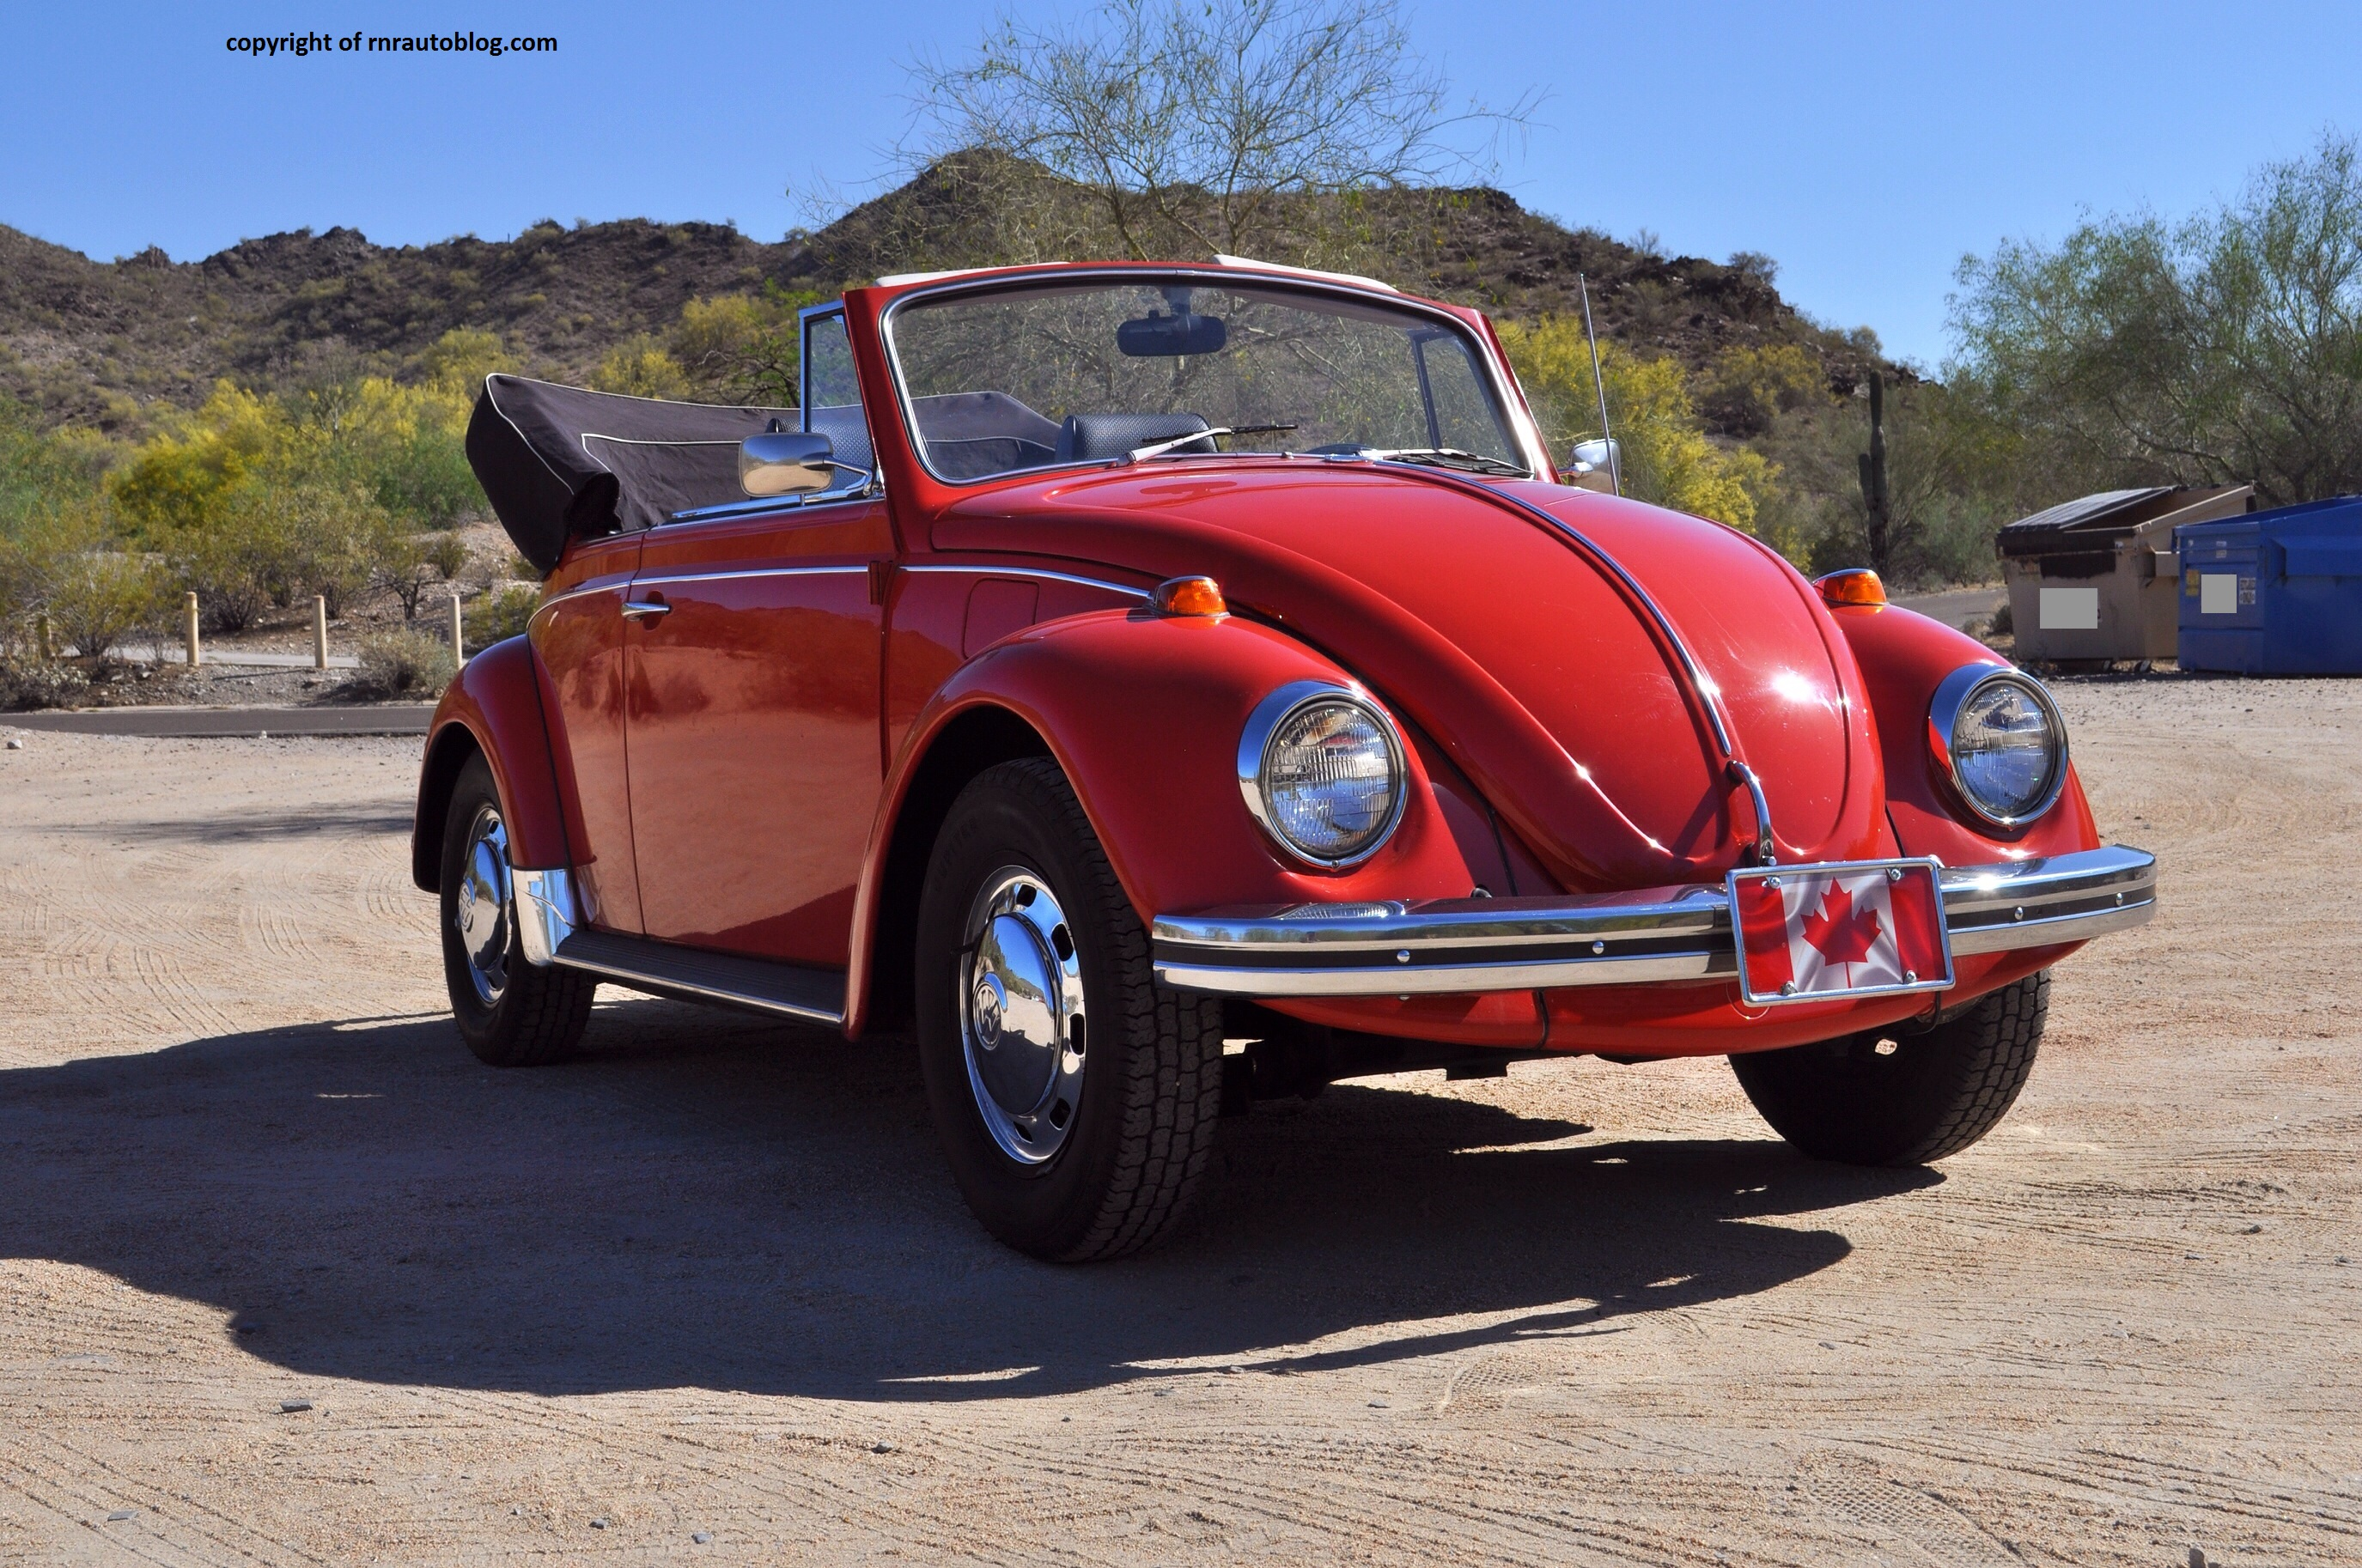 composite large salsa komfort research eos groovecar convertible volkswagen red